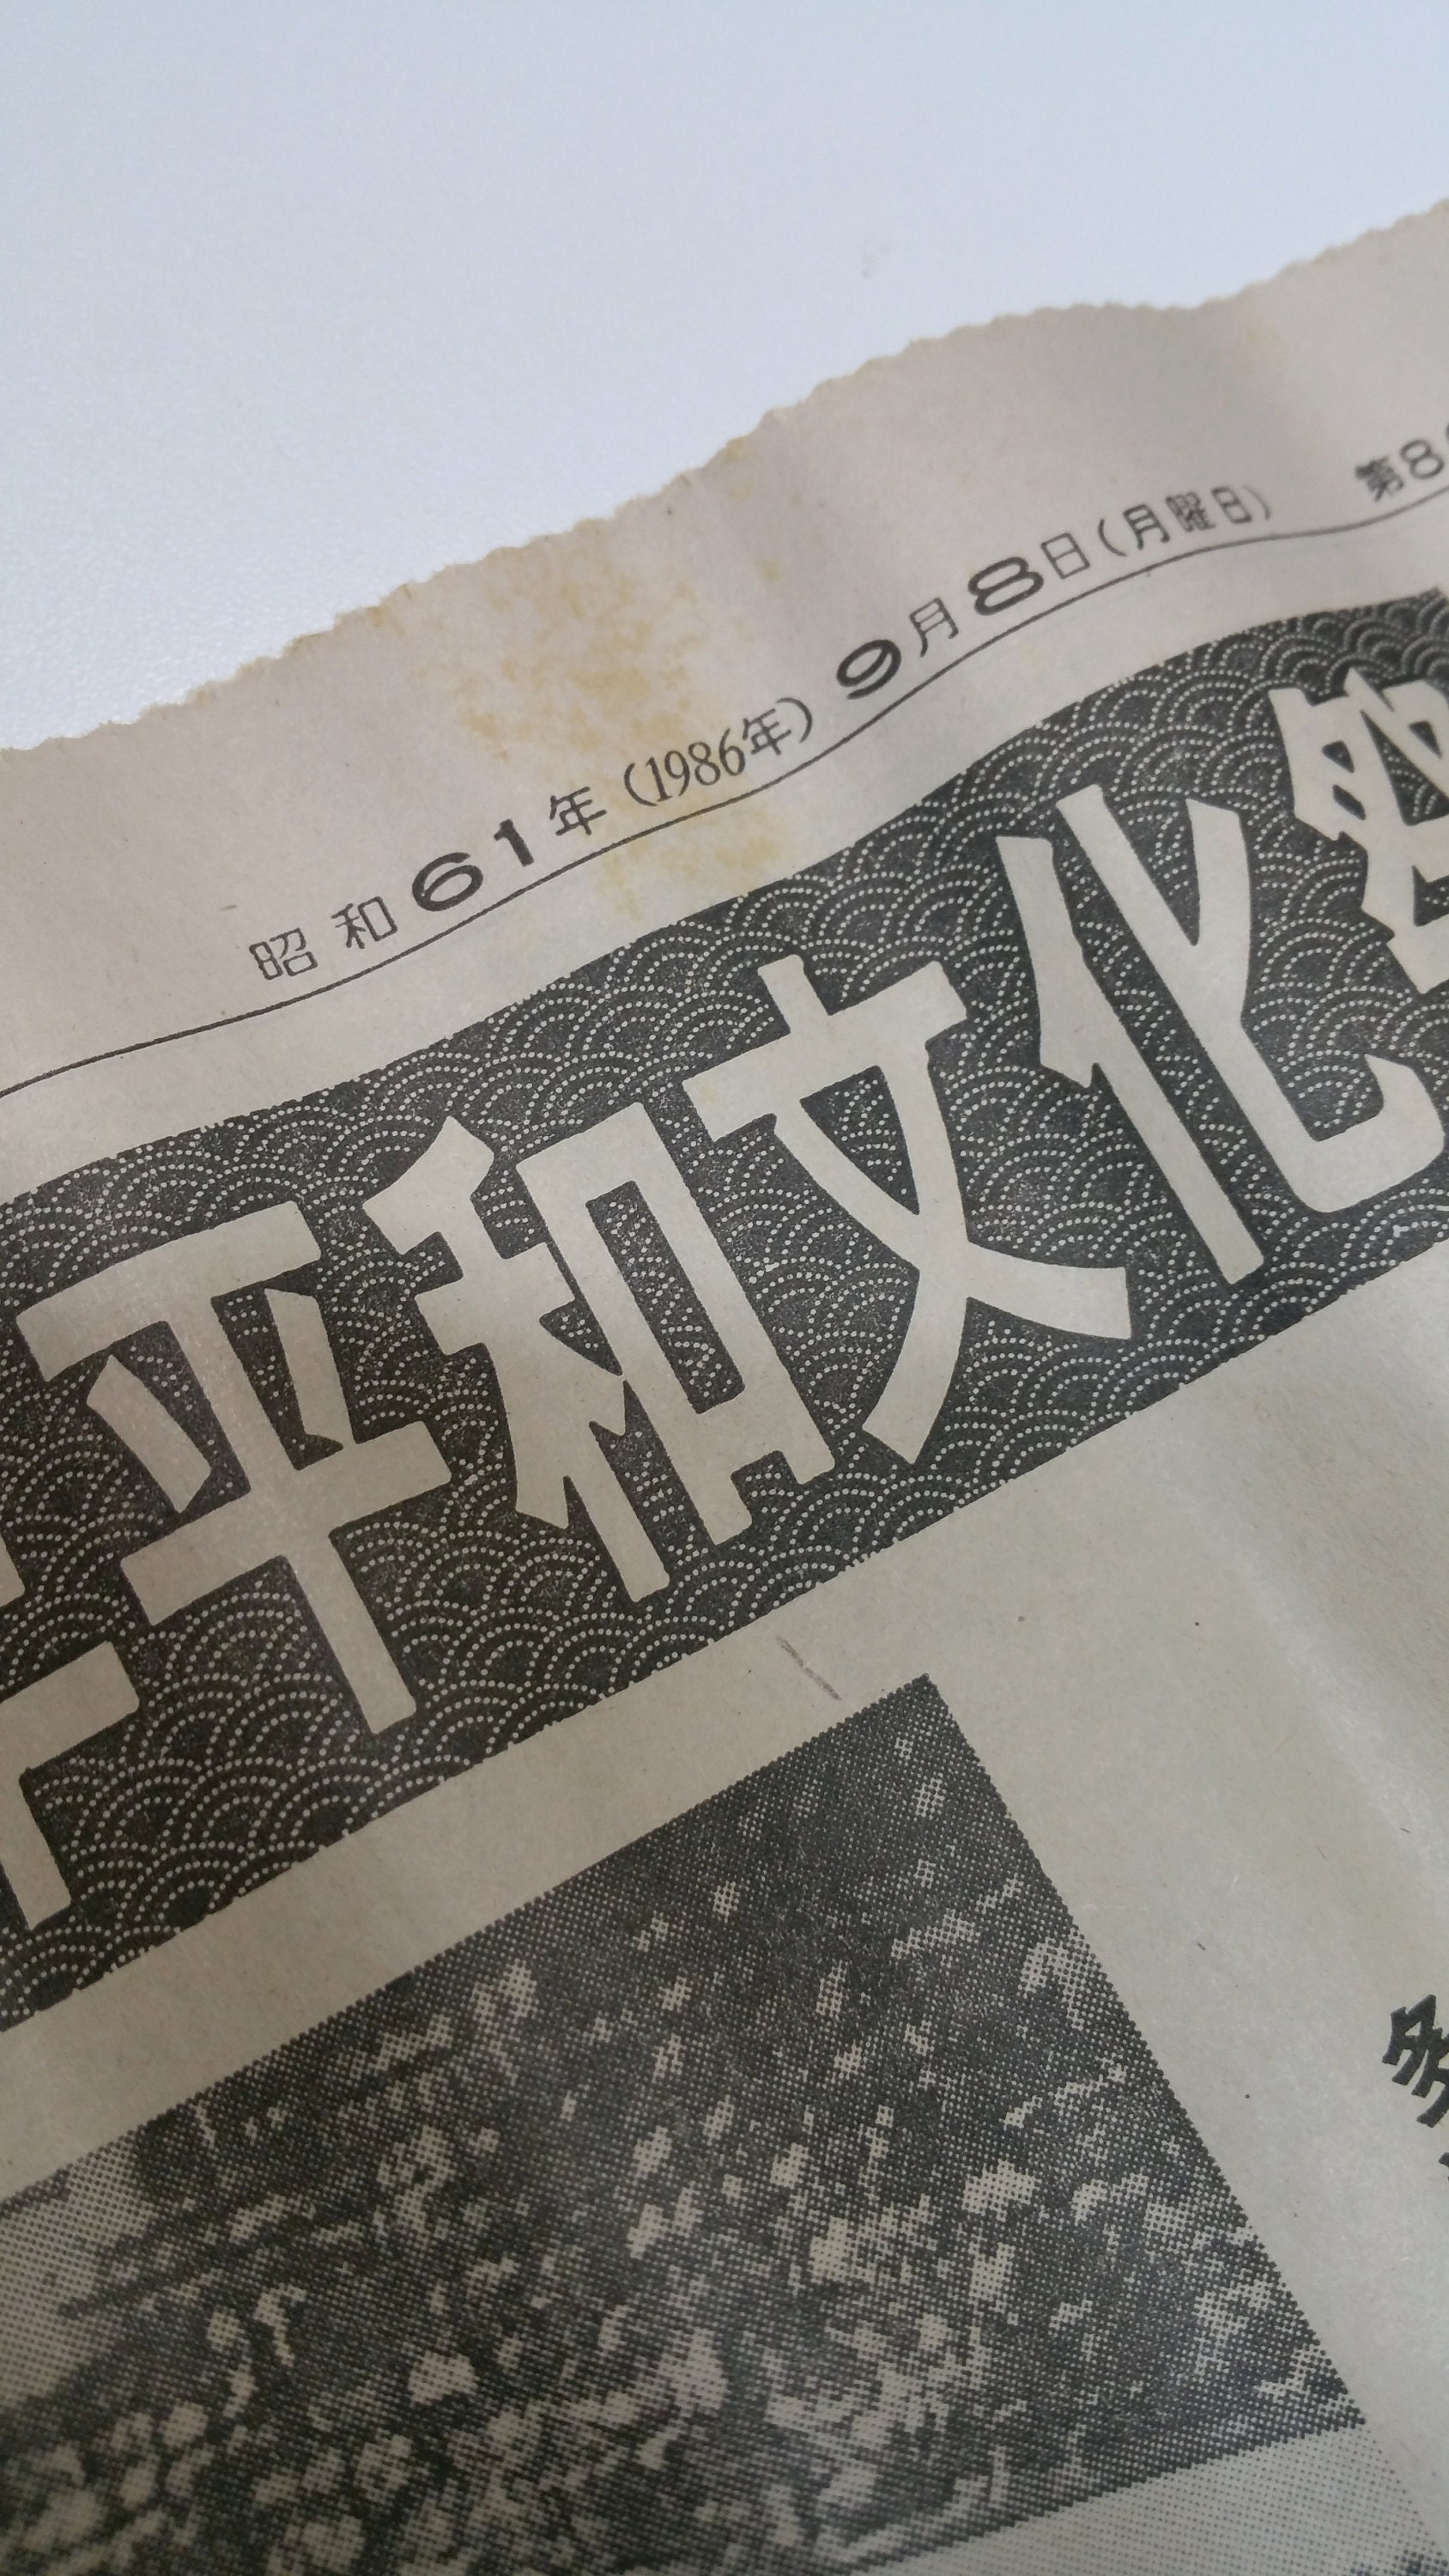 newspaper hidden inside tanmono